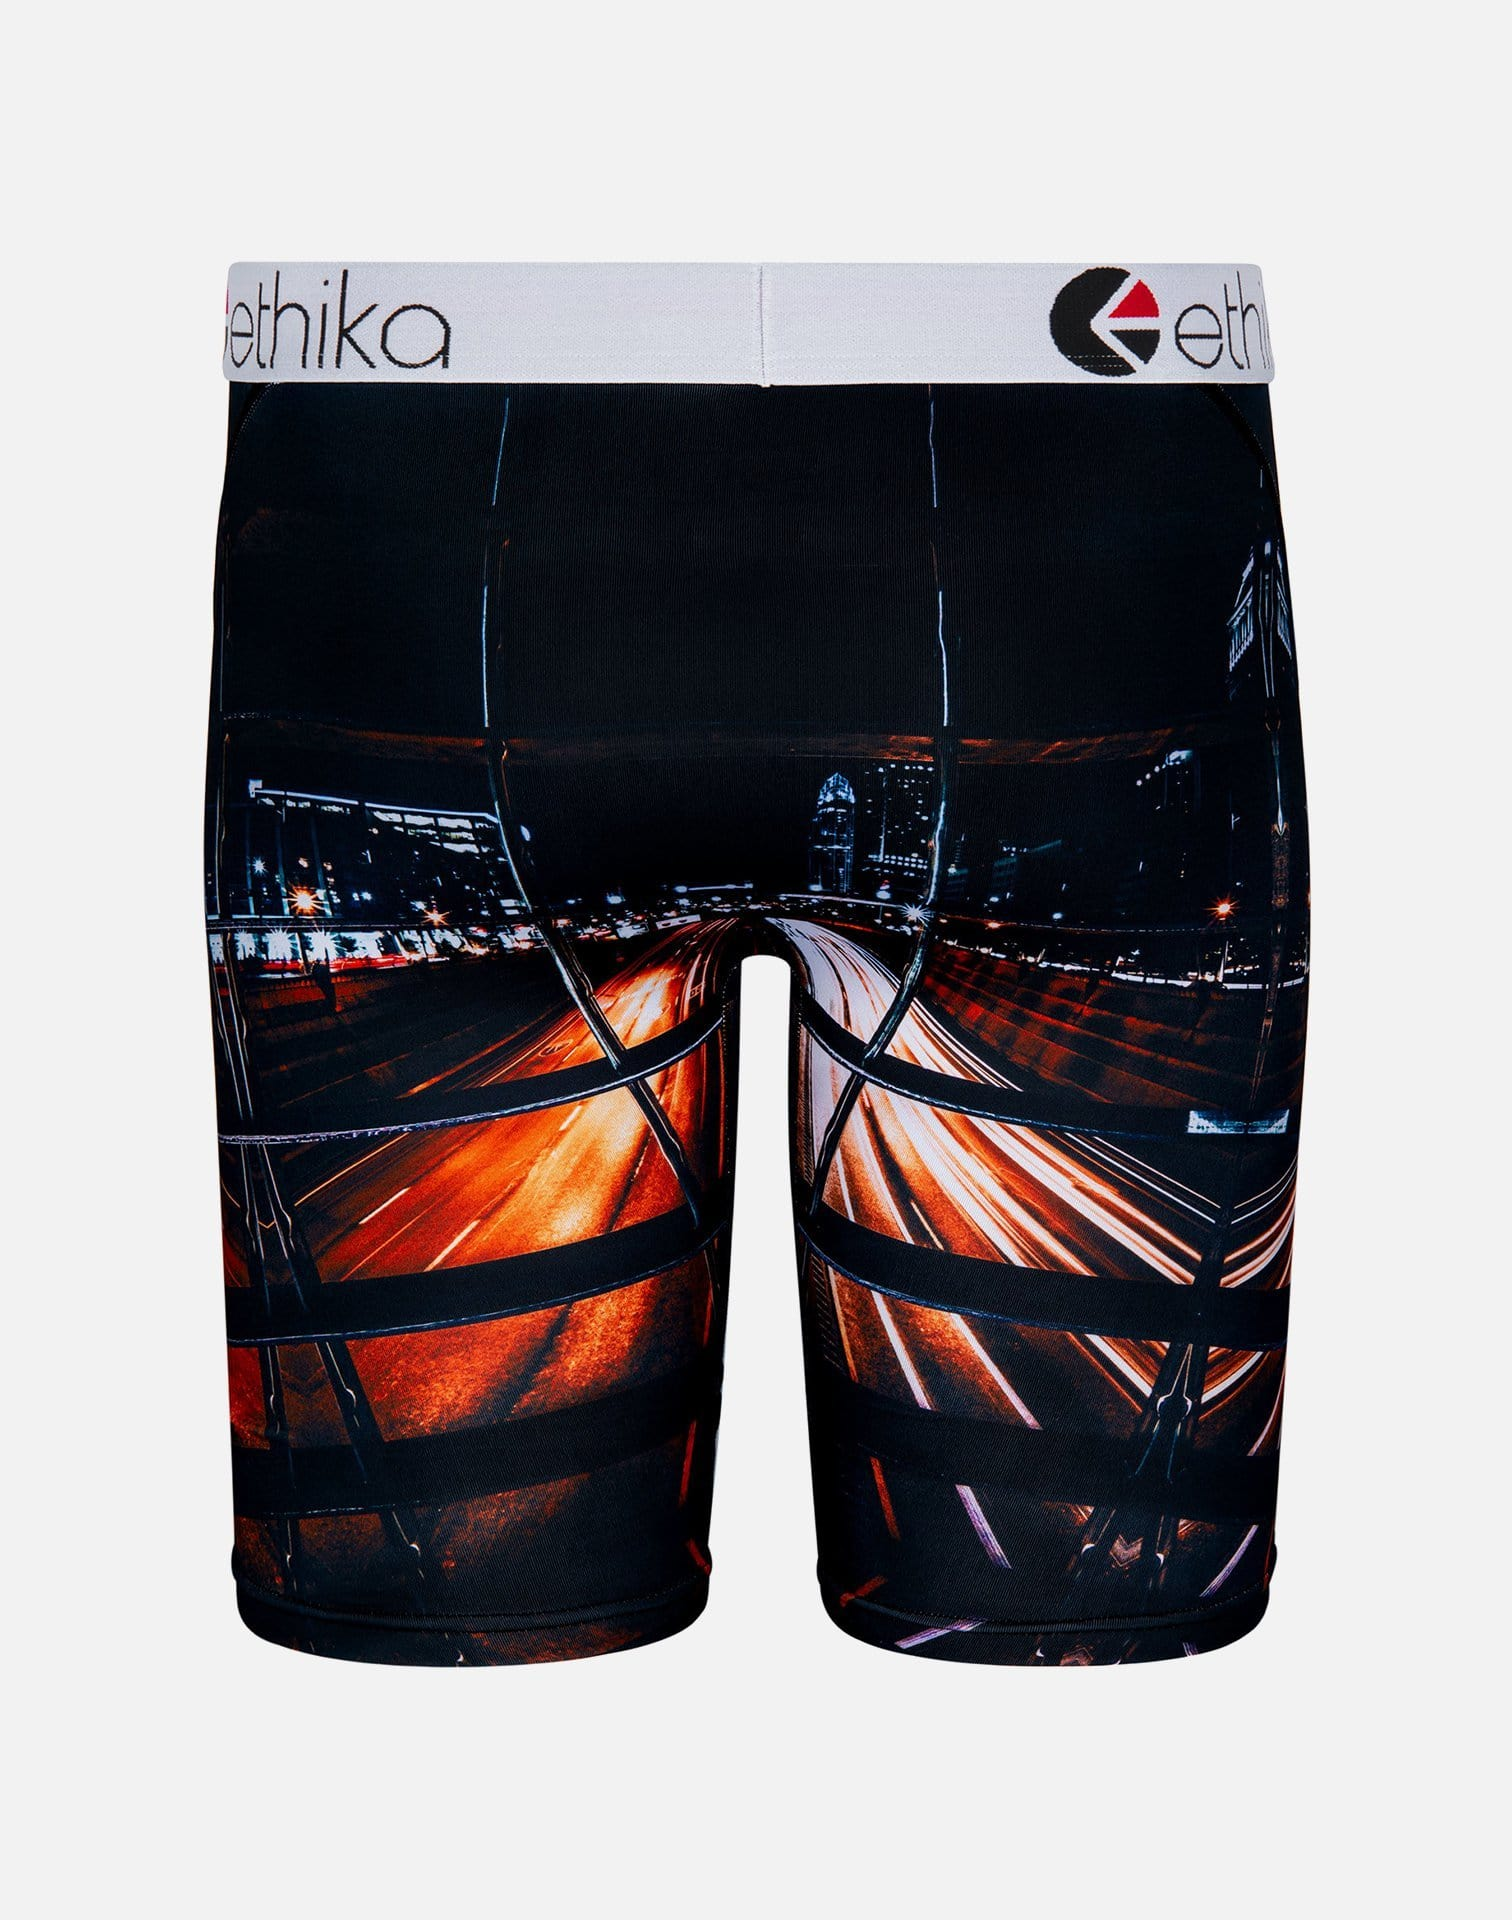 Ethika Men's The High Way Boxer Briefs